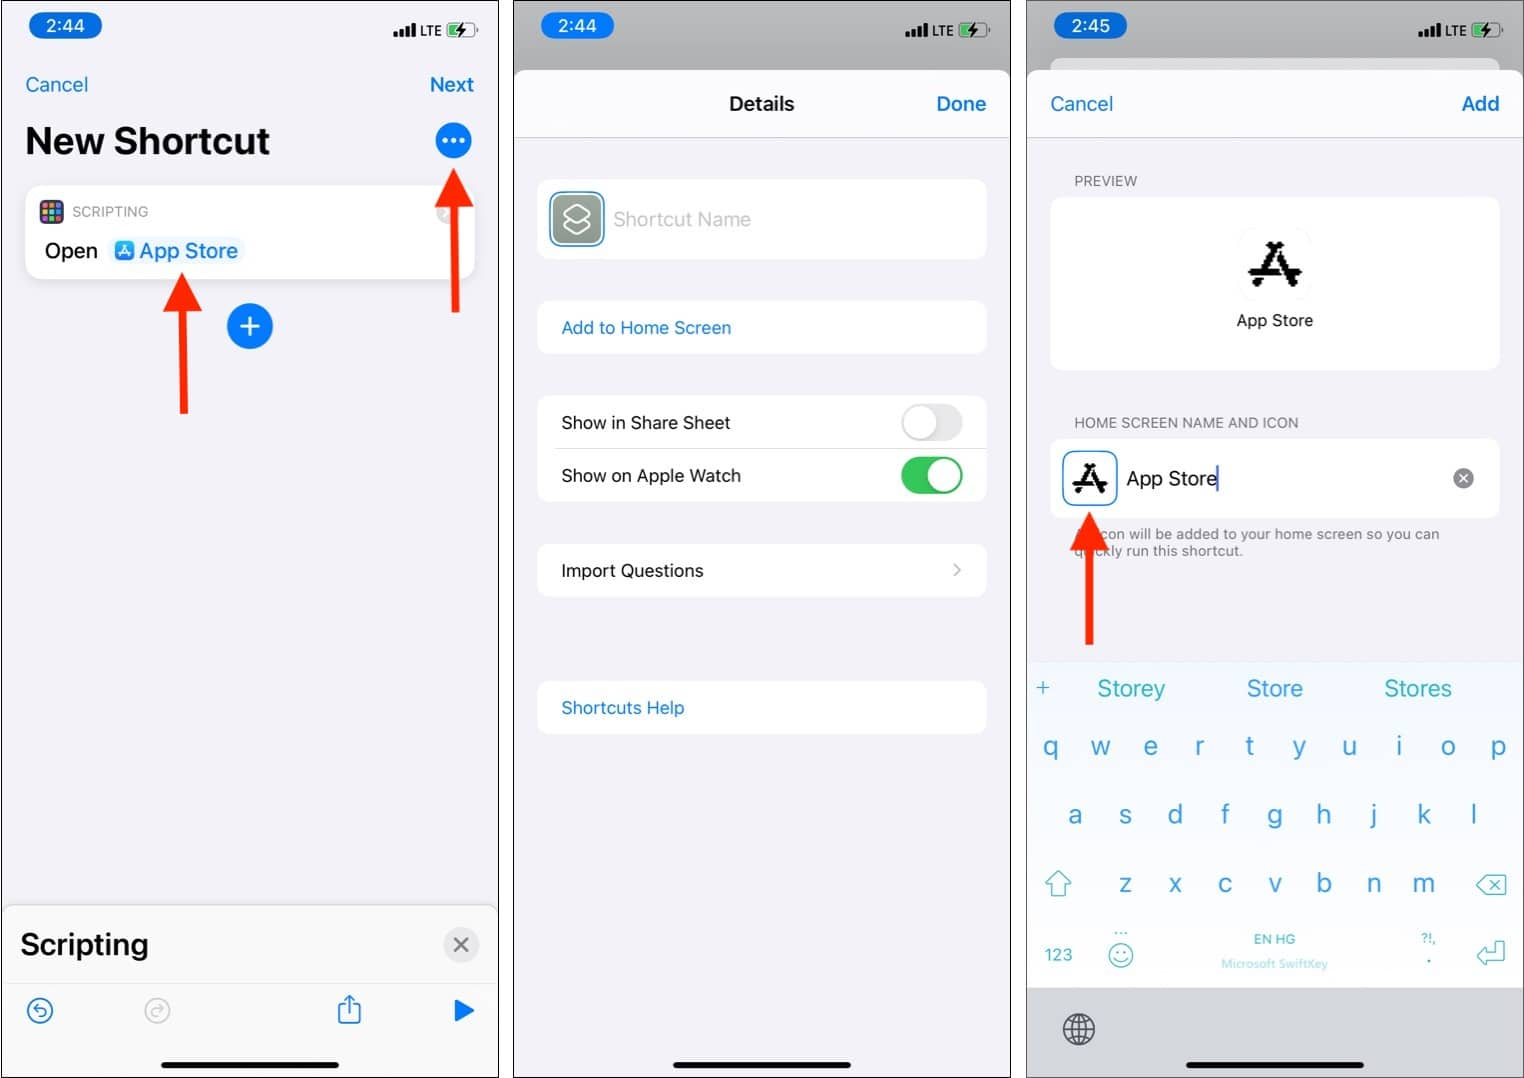 How to change app icons to retro on iPhone